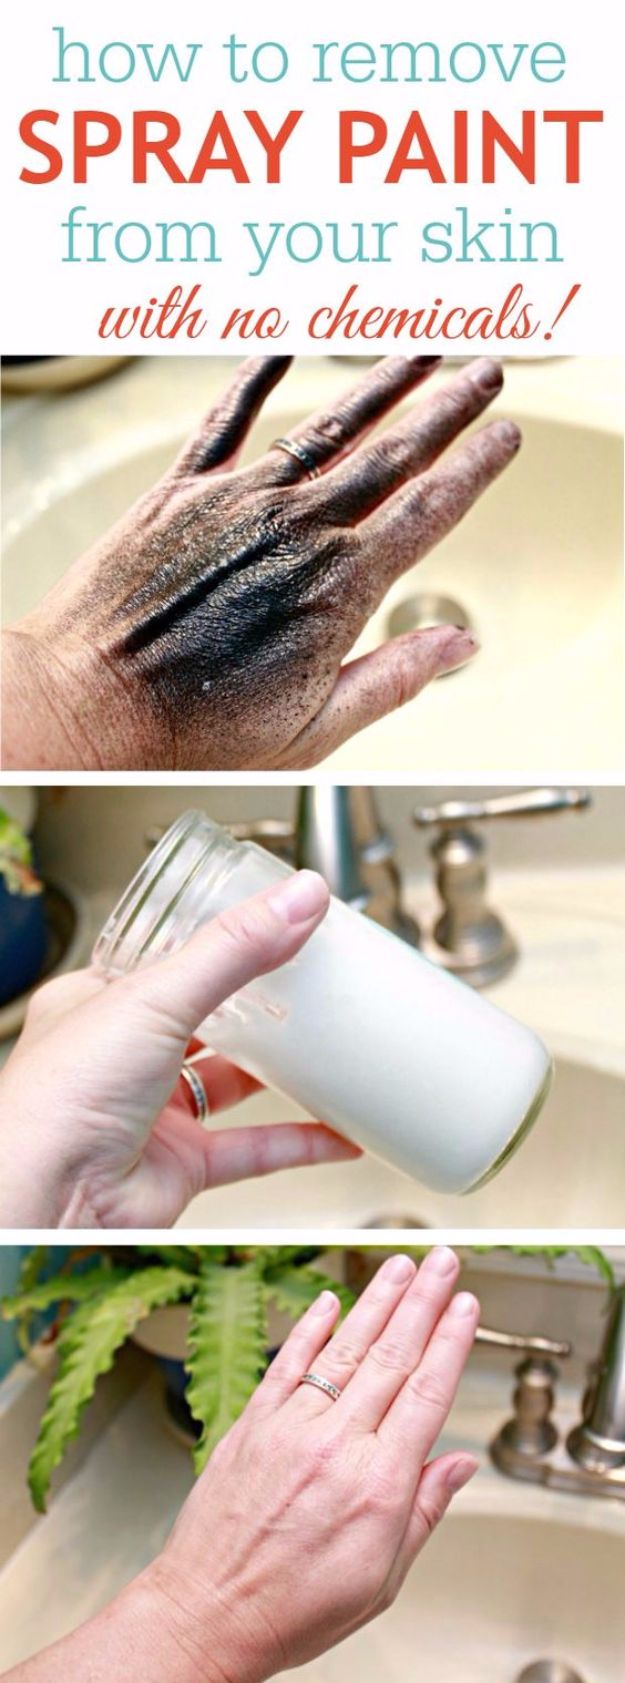 Spray Painting Tips and Tricks - Remove Spray Paint From Your Skn With No Chemicals - Home Improvement Ideas and Tutorials for Spray Painting Furniture, House, Doors, Trim, Windows and Walls - Step by Step Tutorials and Best How To Instructions - DIY Projects and Crafts by DIY JOY http://diyjoy.com/spray-painting-tips-tricks